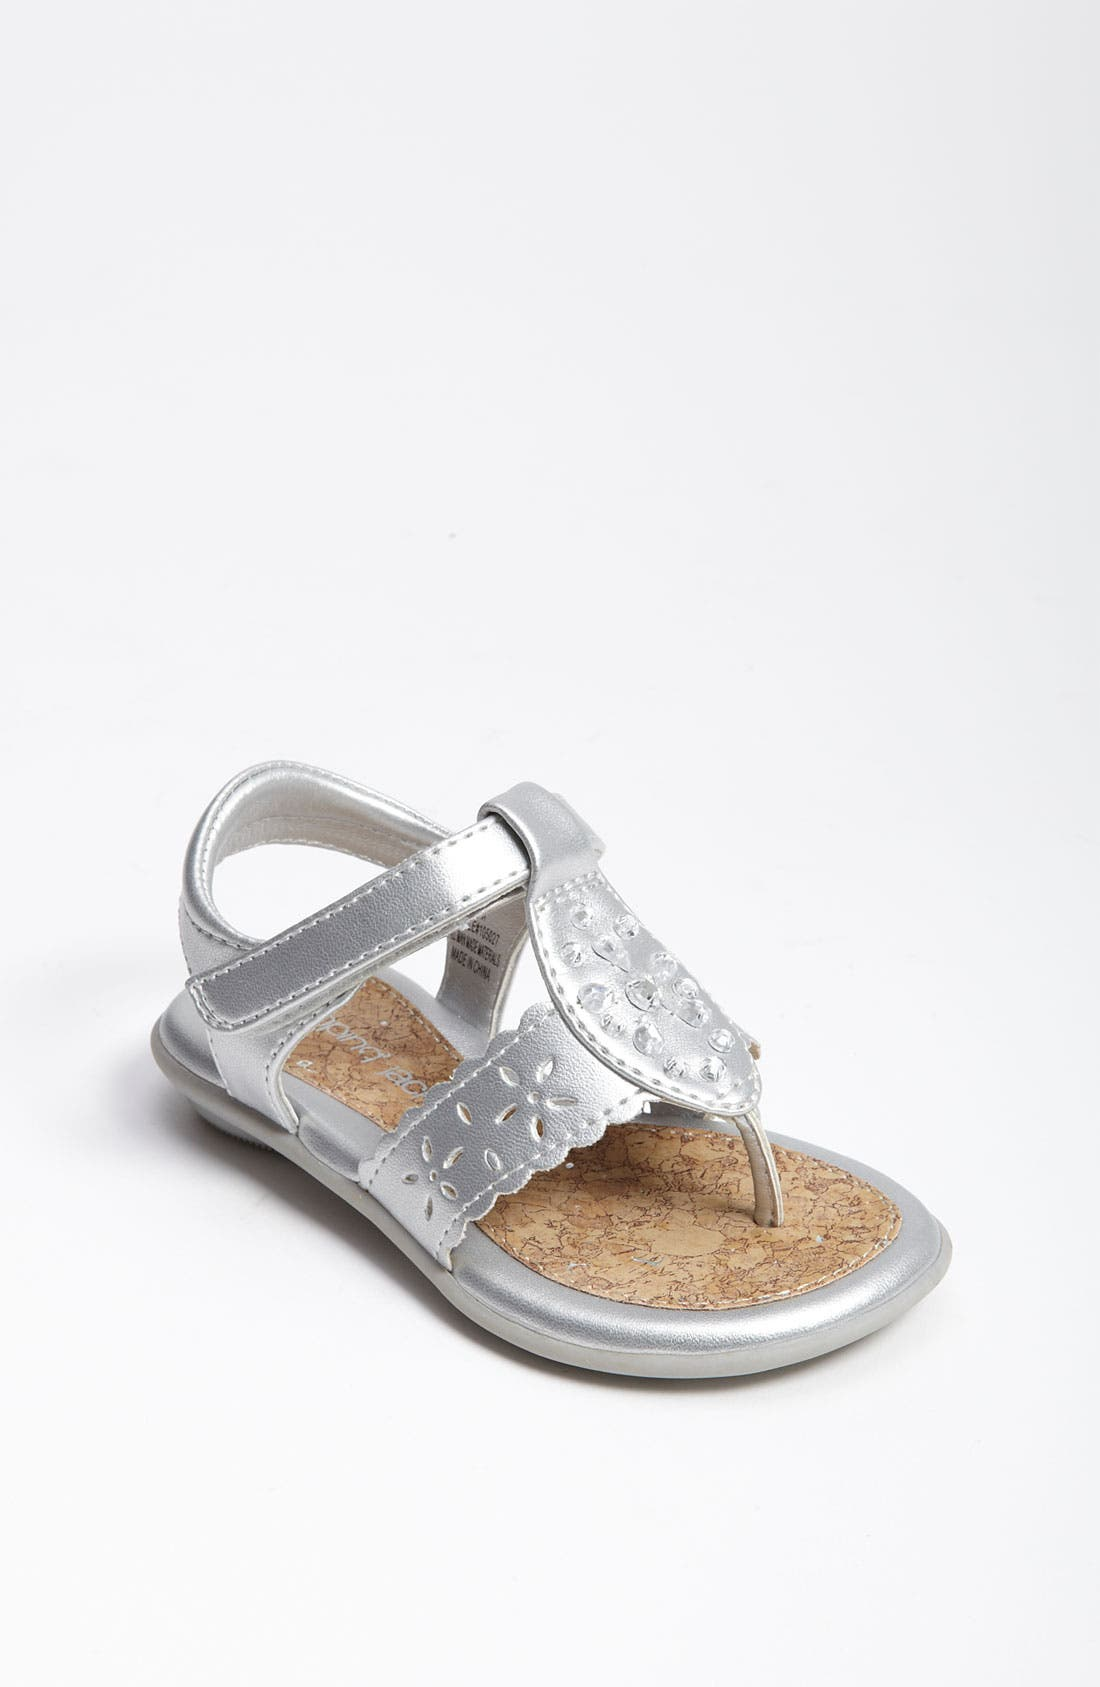 Main Image - Jumping Jacks 'Christy' Sandal (Walker, Toddler, Little Kid & Big Kid)